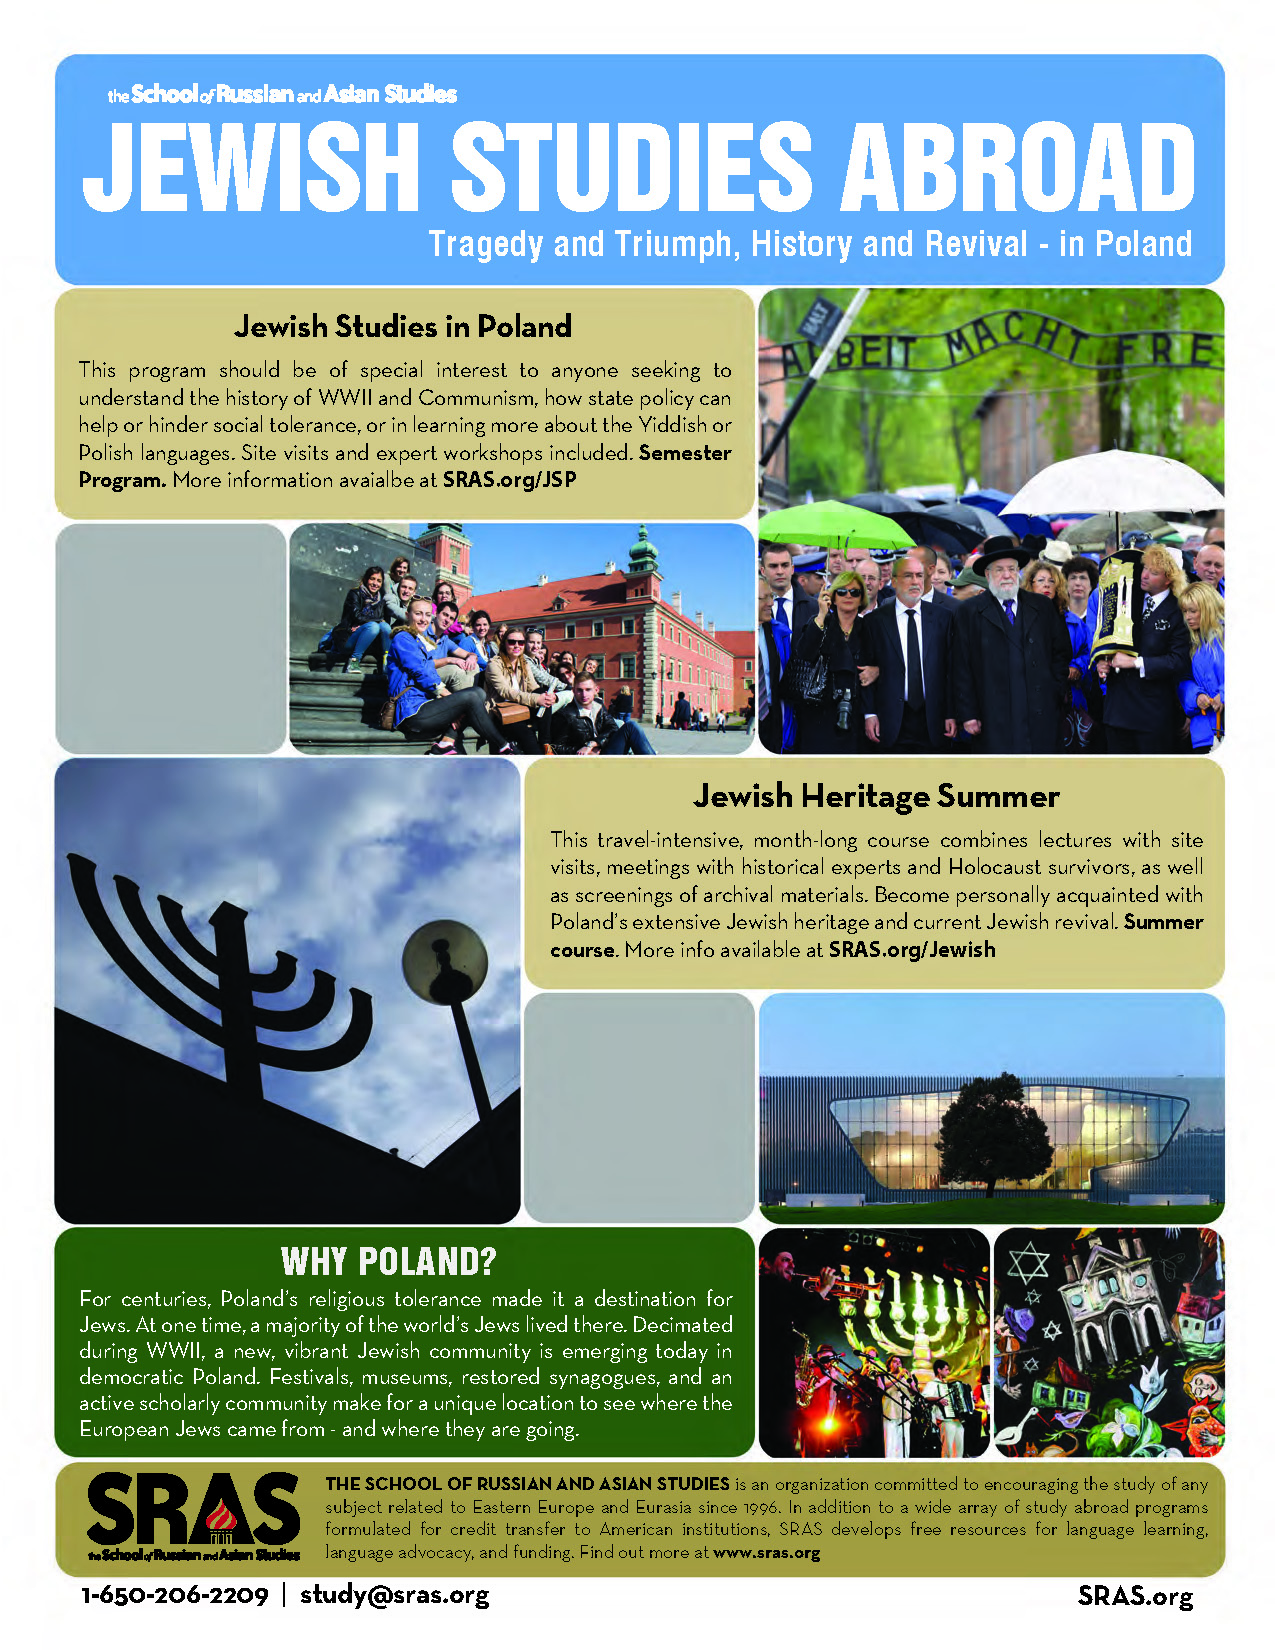 Jewish Studies Abroad in Poland SRAS flyer